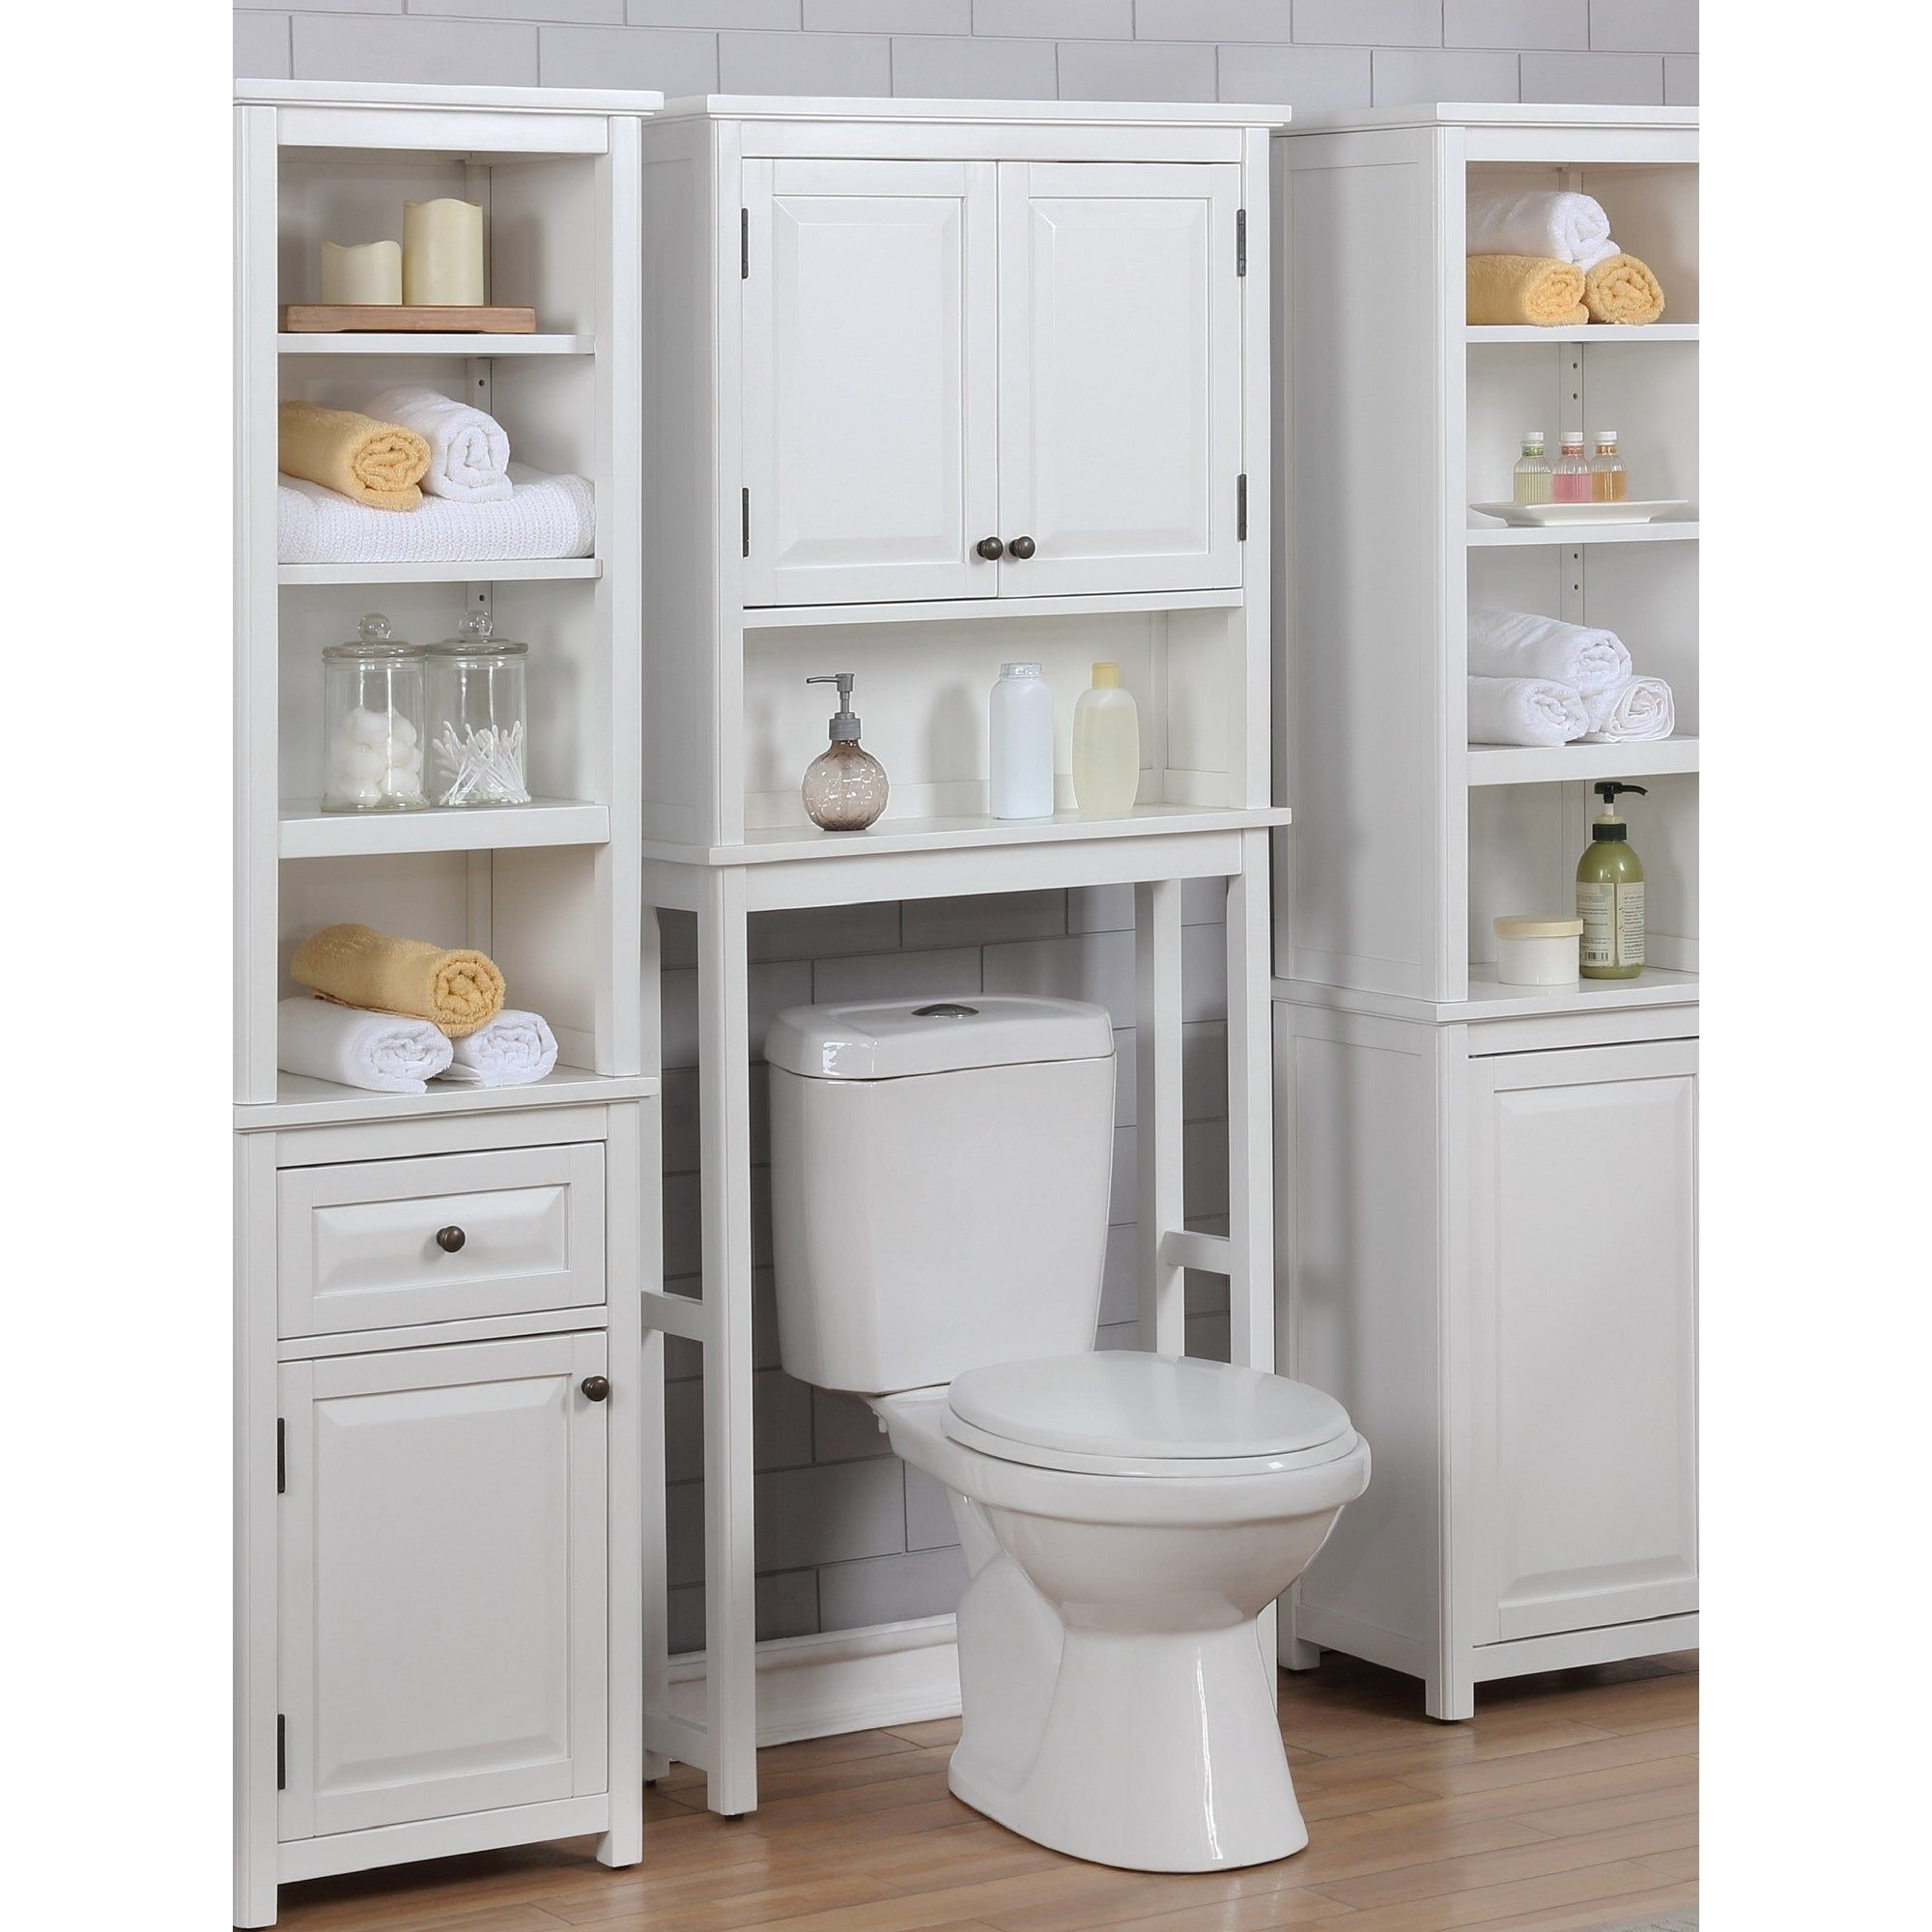 17+ Wall mounted bathroom tower cabinet type